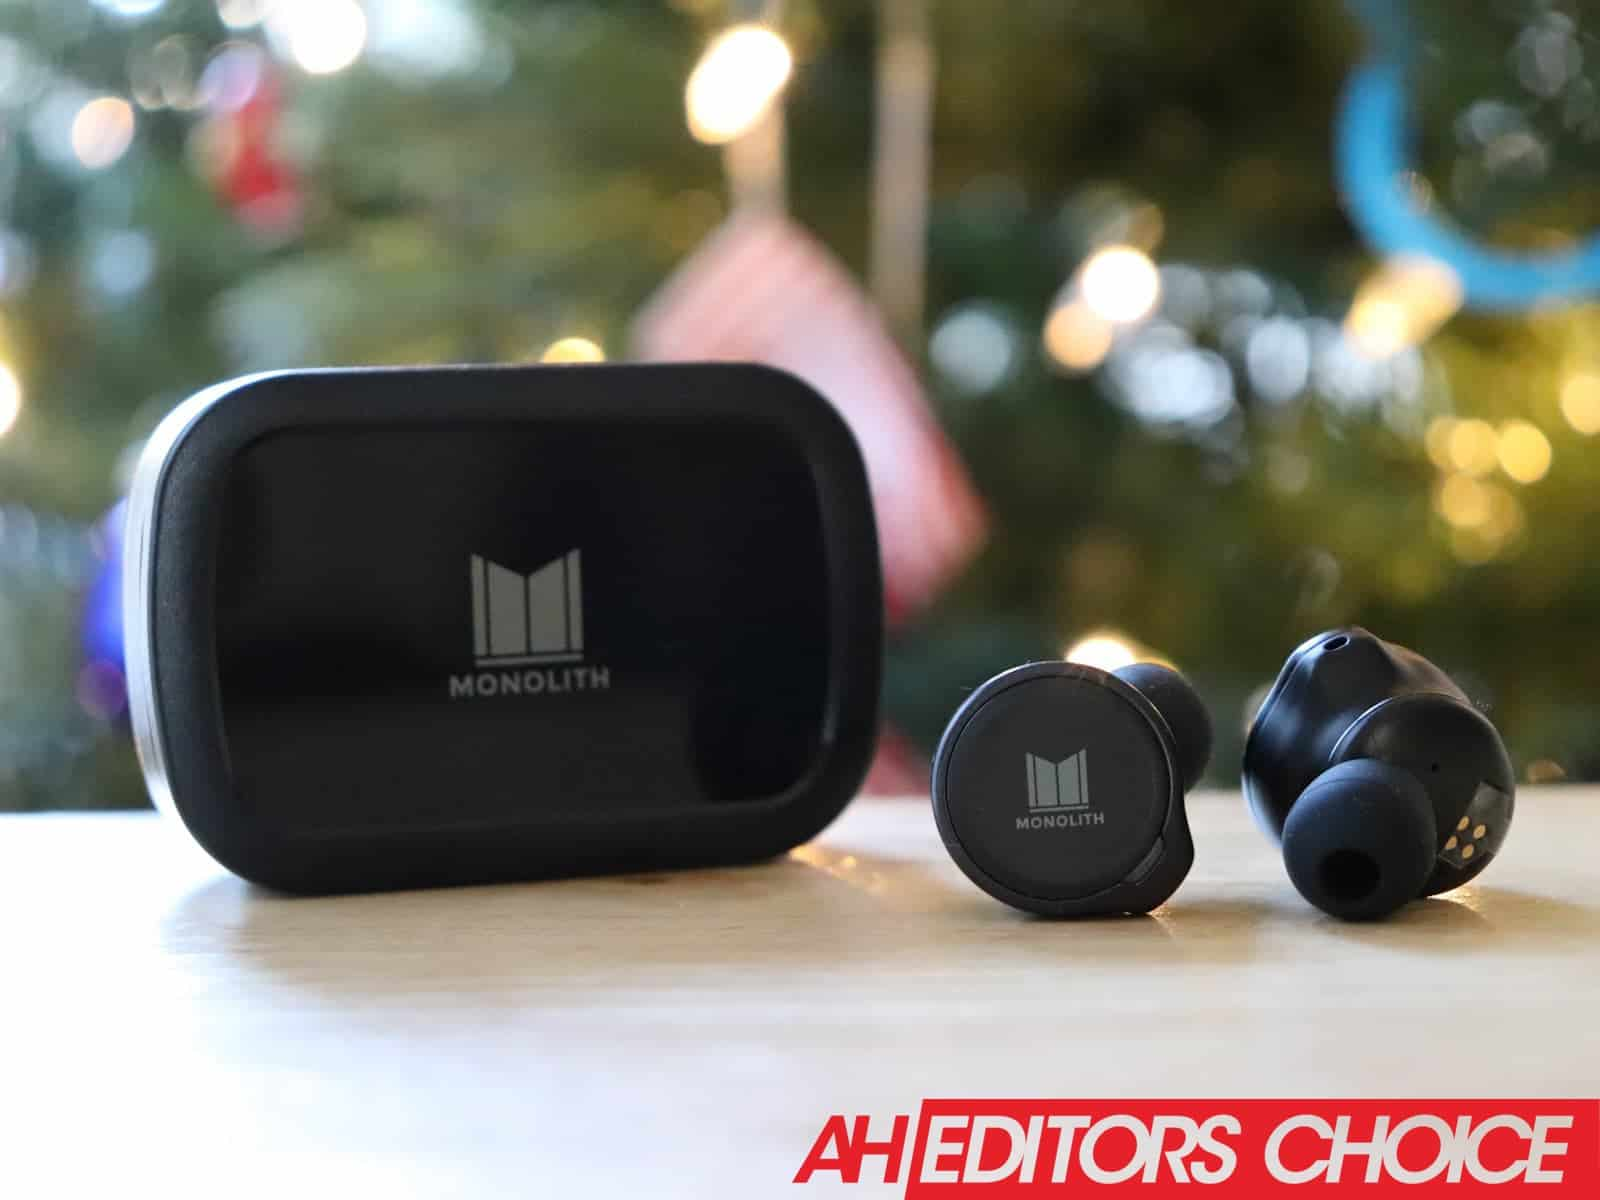 01 Monoprice M TWE TrueWireless Earphones review title DG AH 2020 best headphones